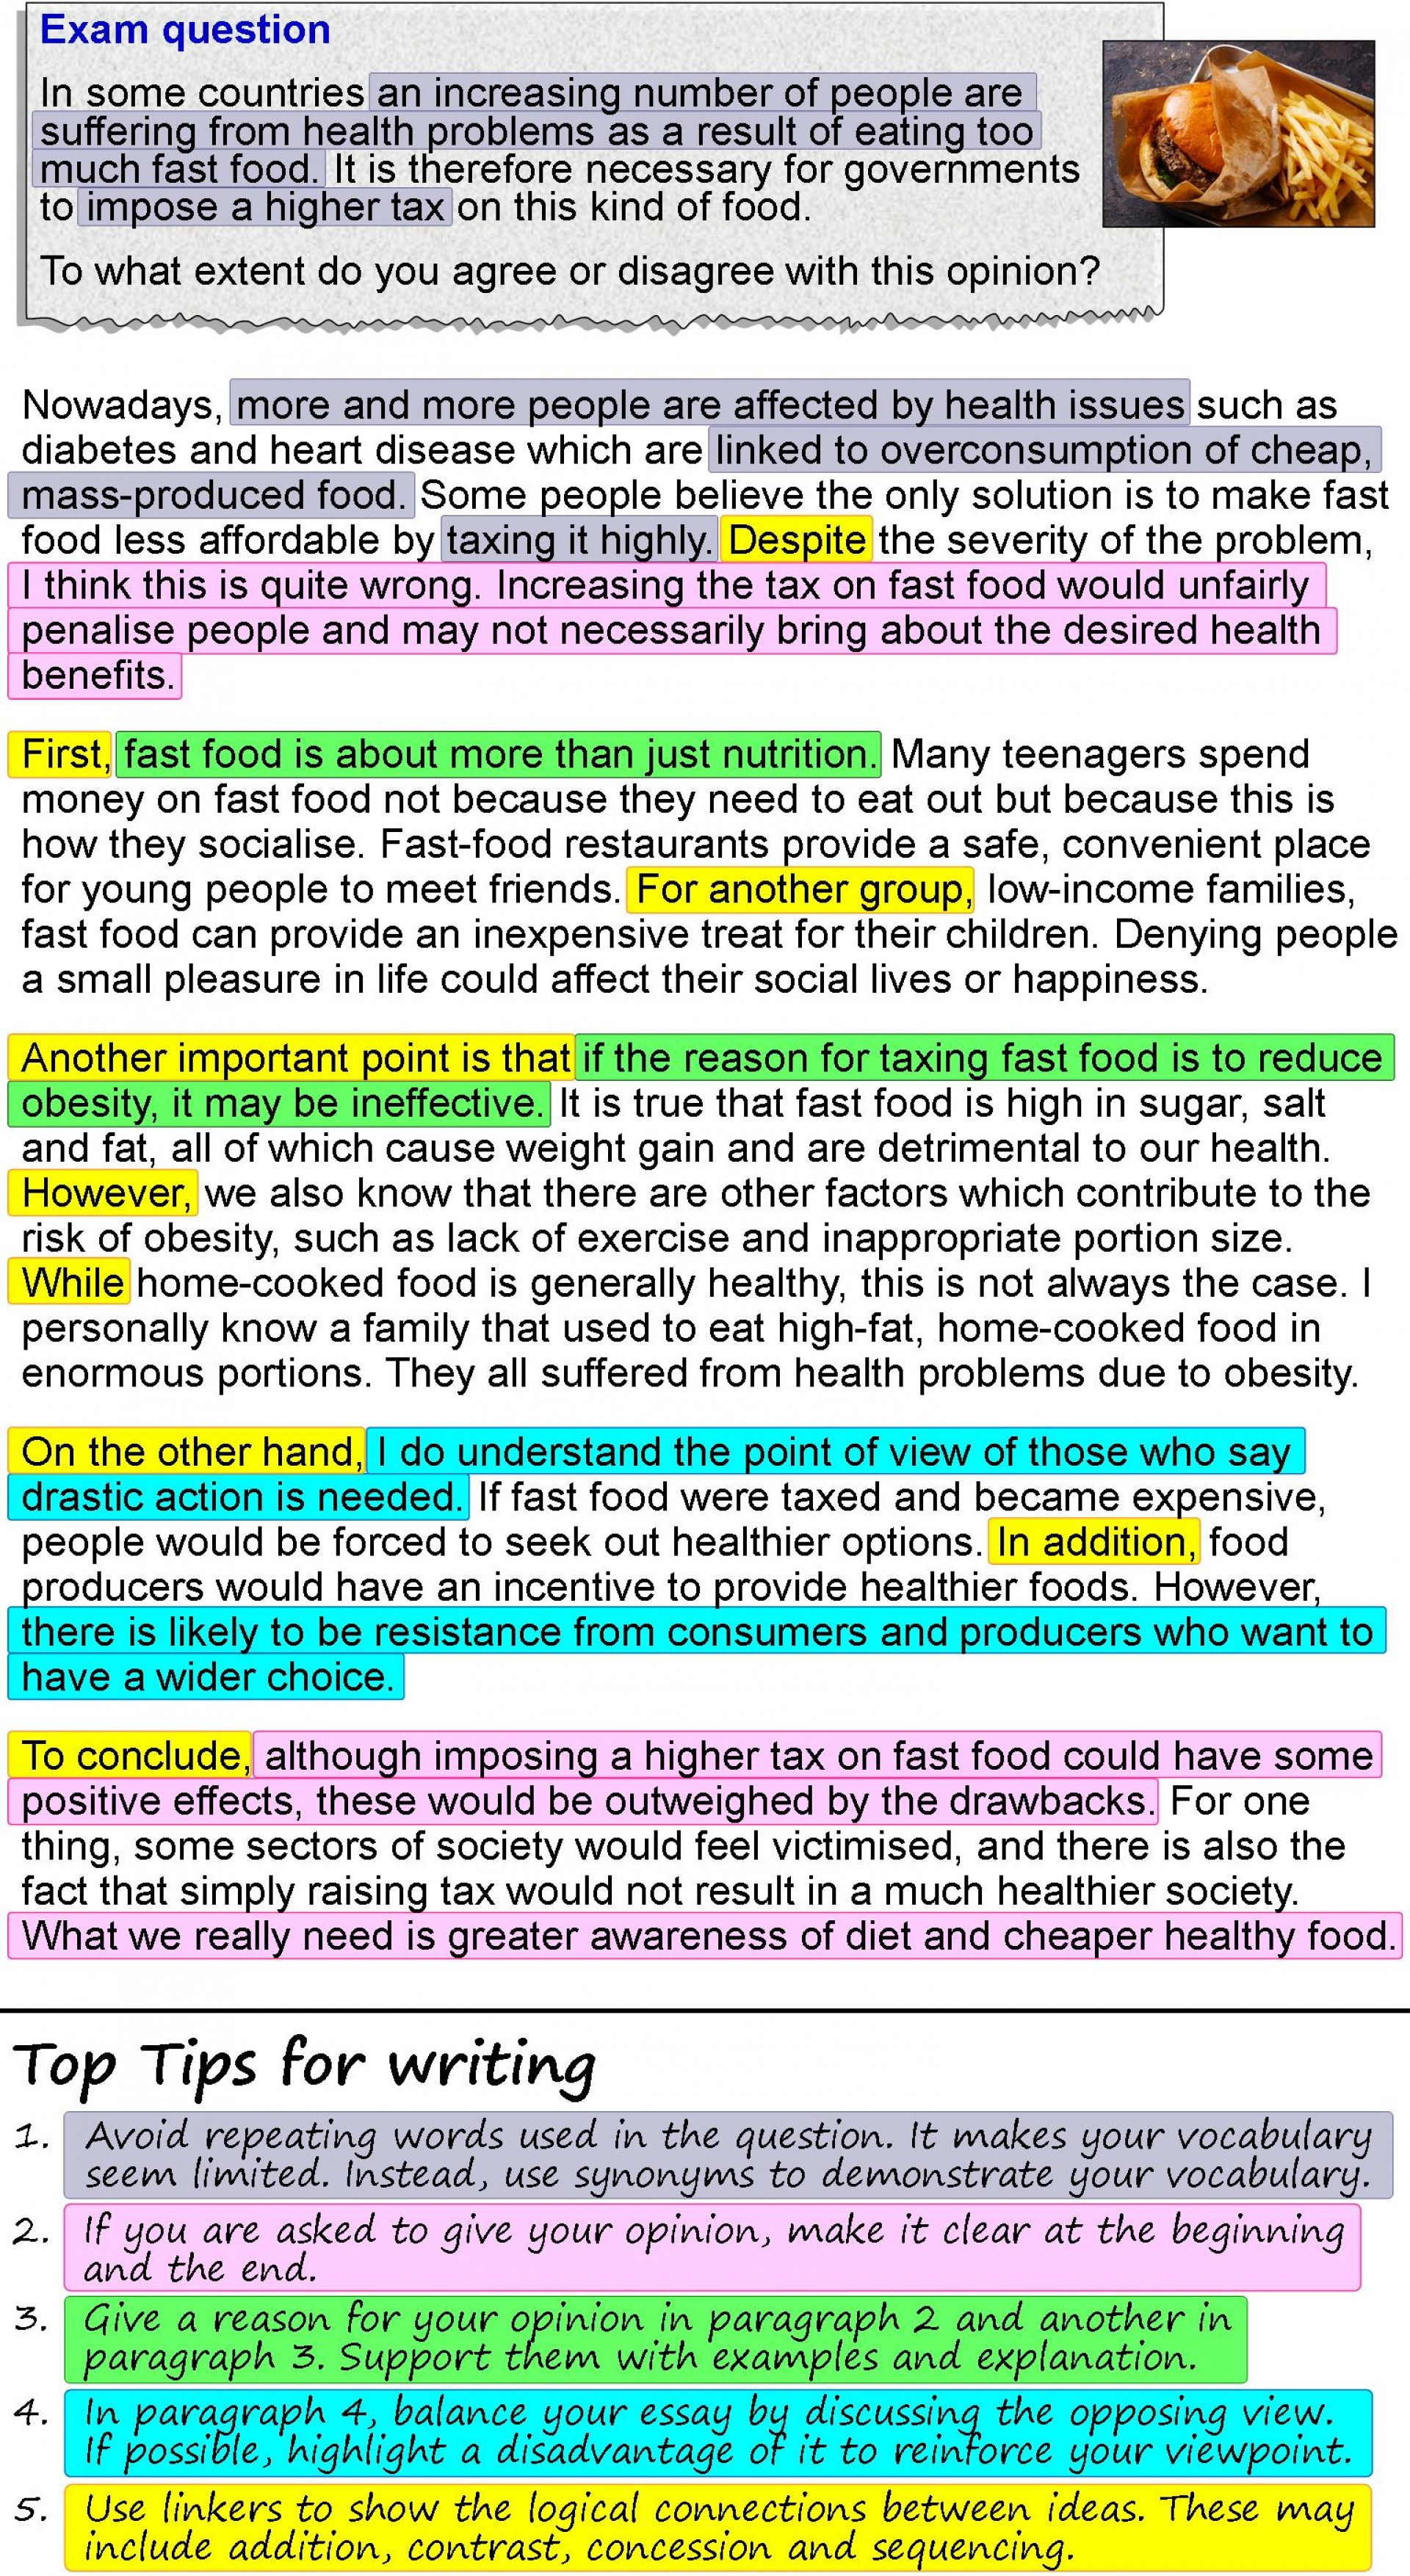 001 Essay Example Fast Food Culture An Opinion About 4 Frightening In Tamil India 1920